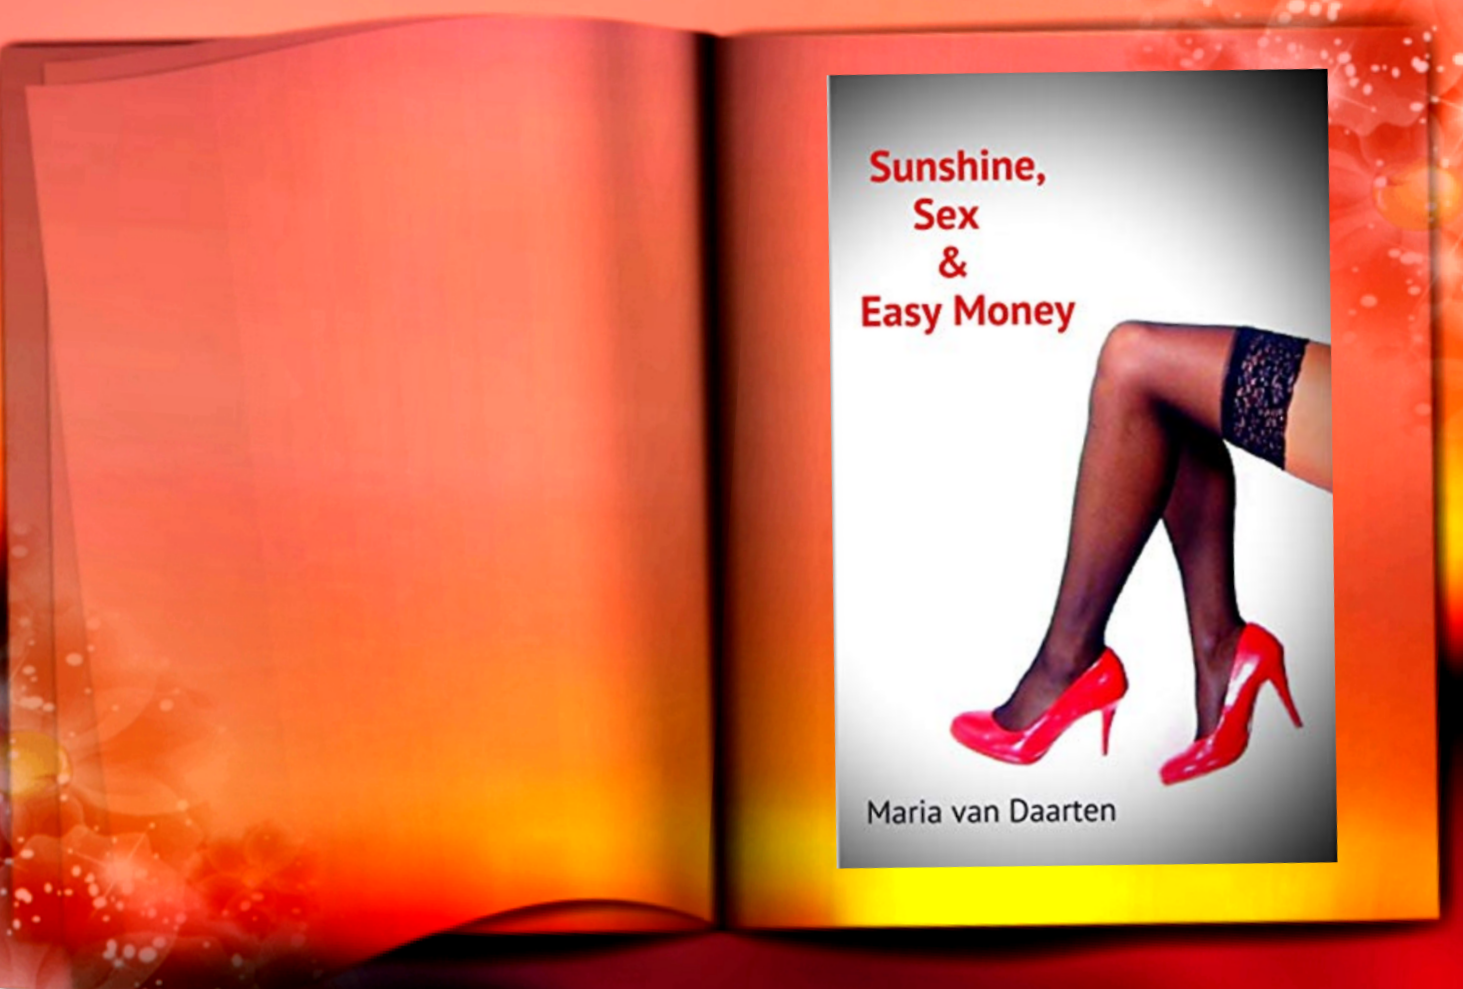 Chapter 9: Sunshine, Sex & Easy Money - Diary of a Call Girl